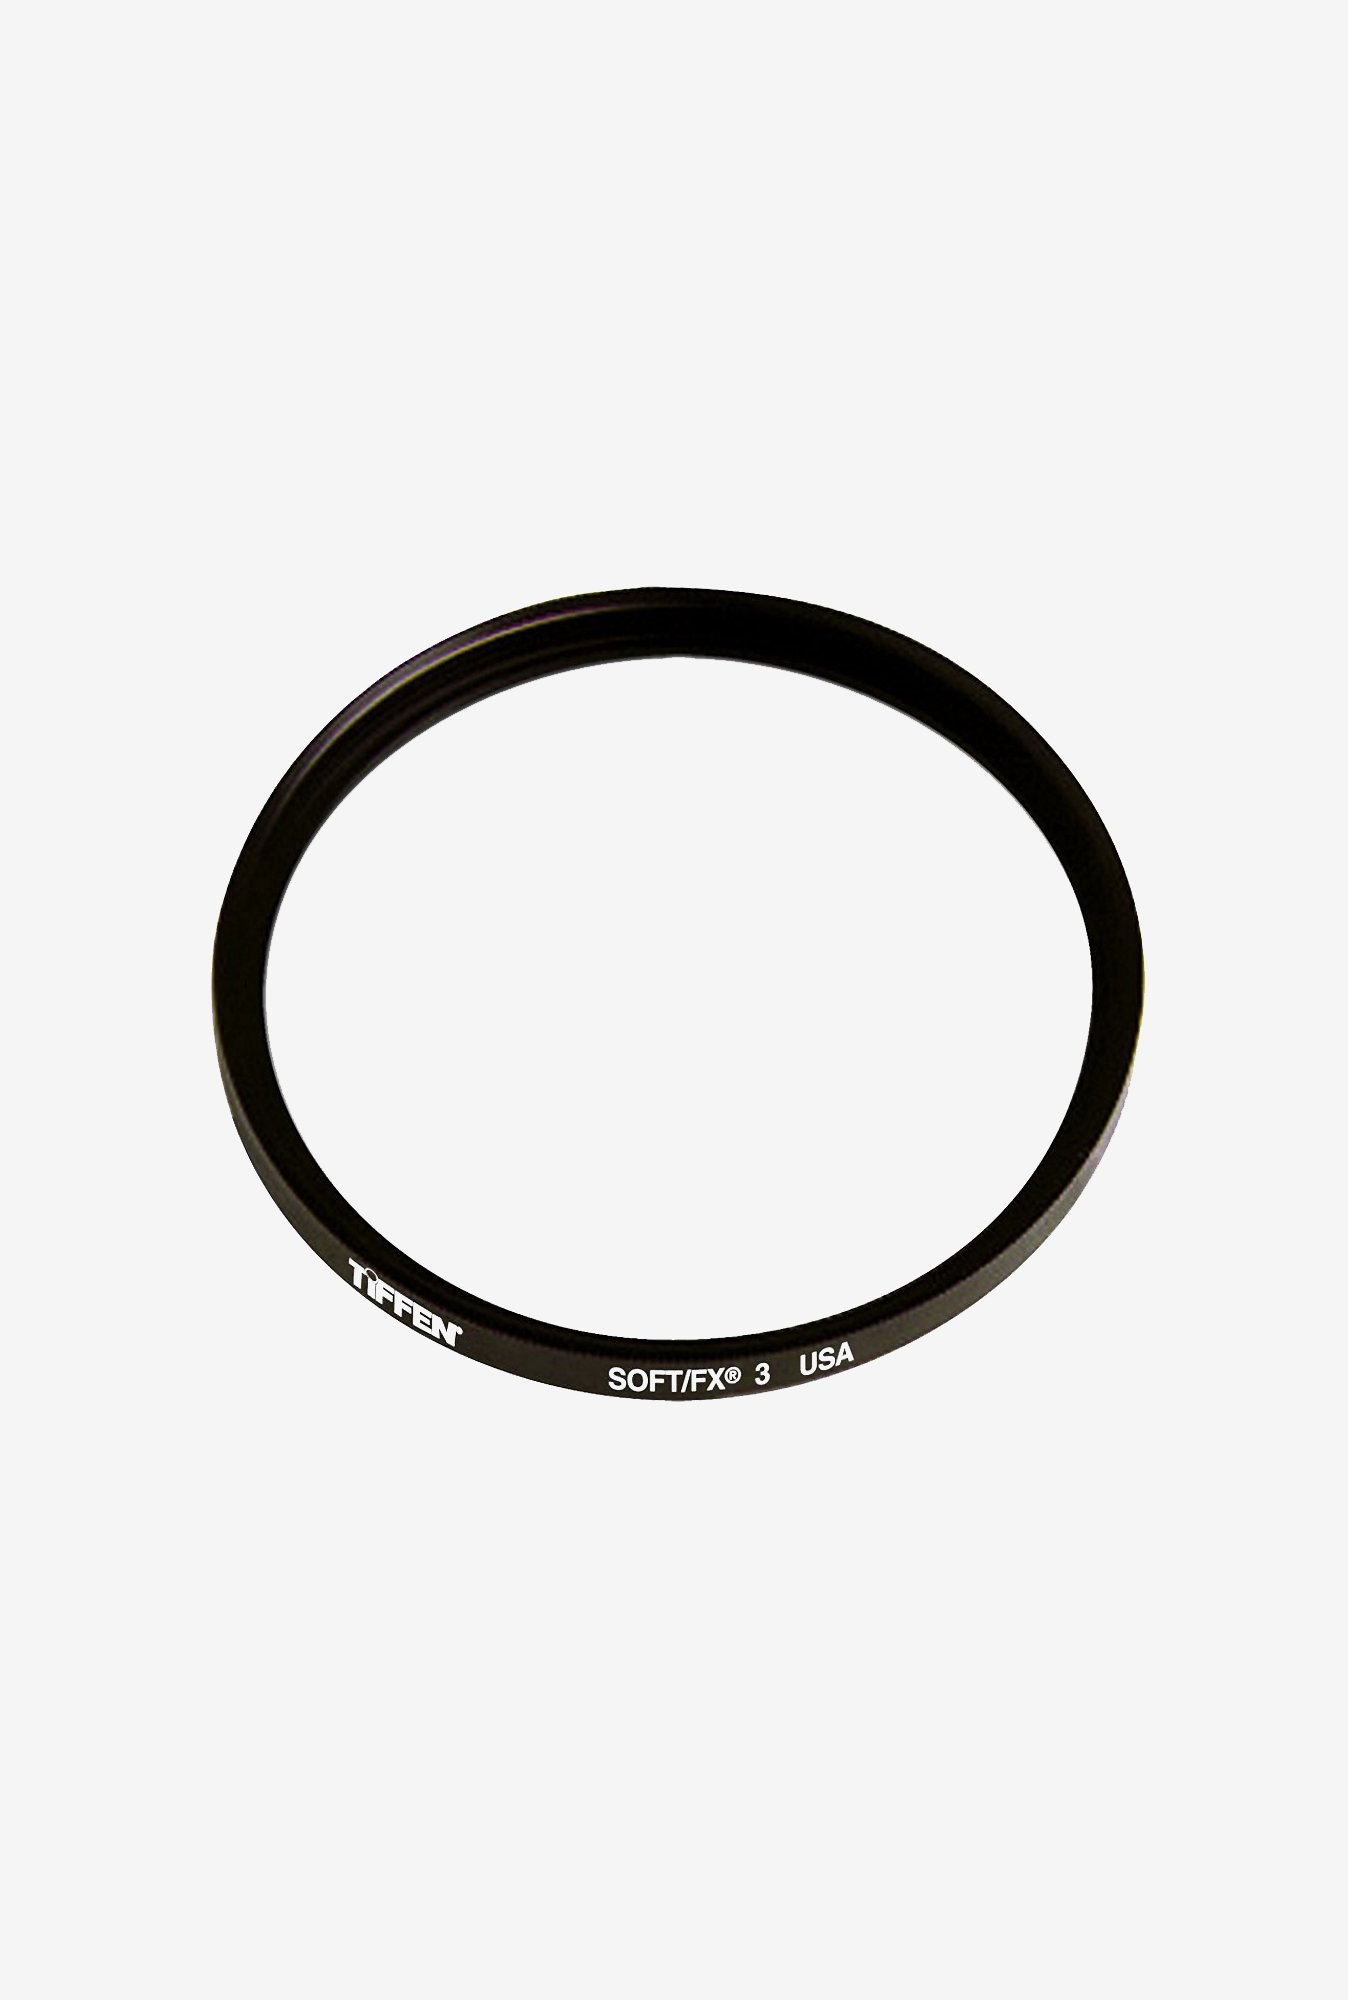 Tiffen 46SFX3 46mm Soft/Fx 3 Filter (Black)